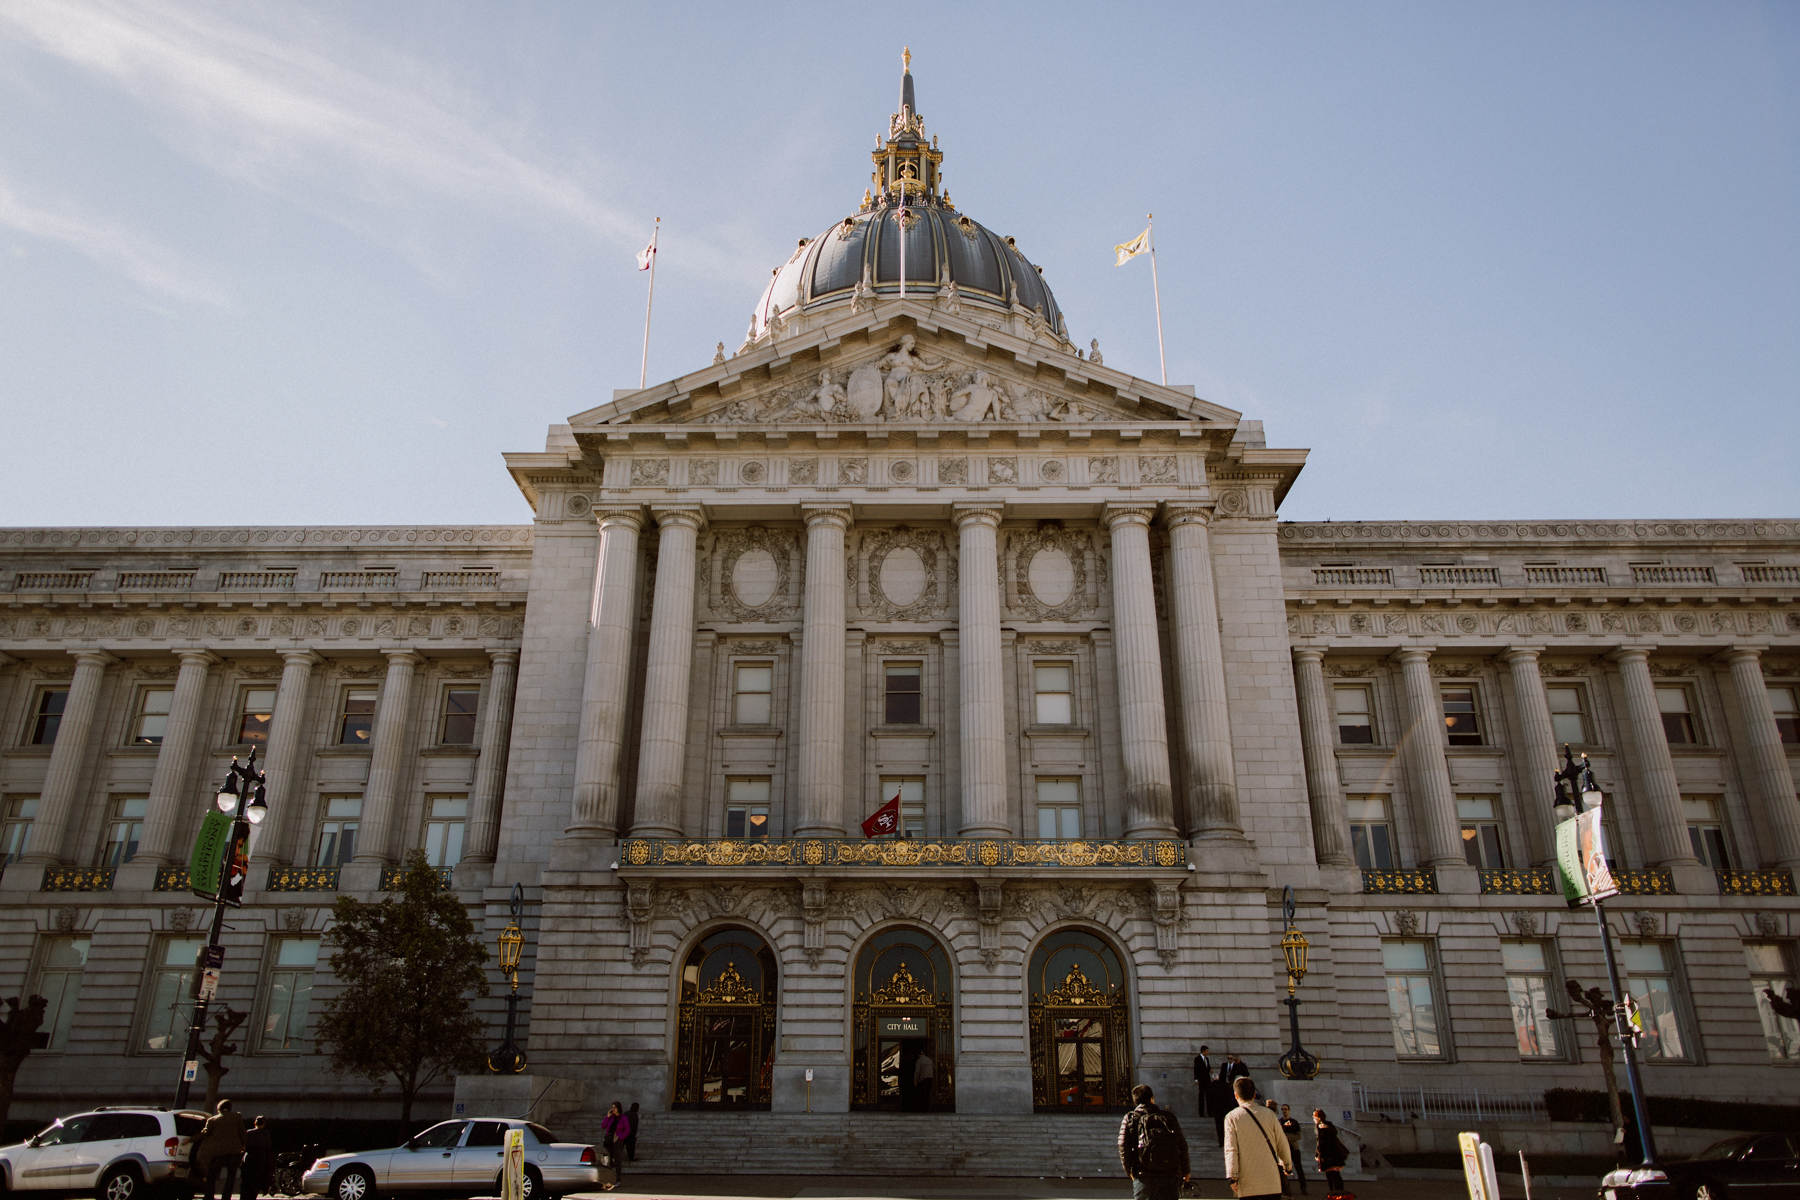 The exterior of San Francisco City Hall.